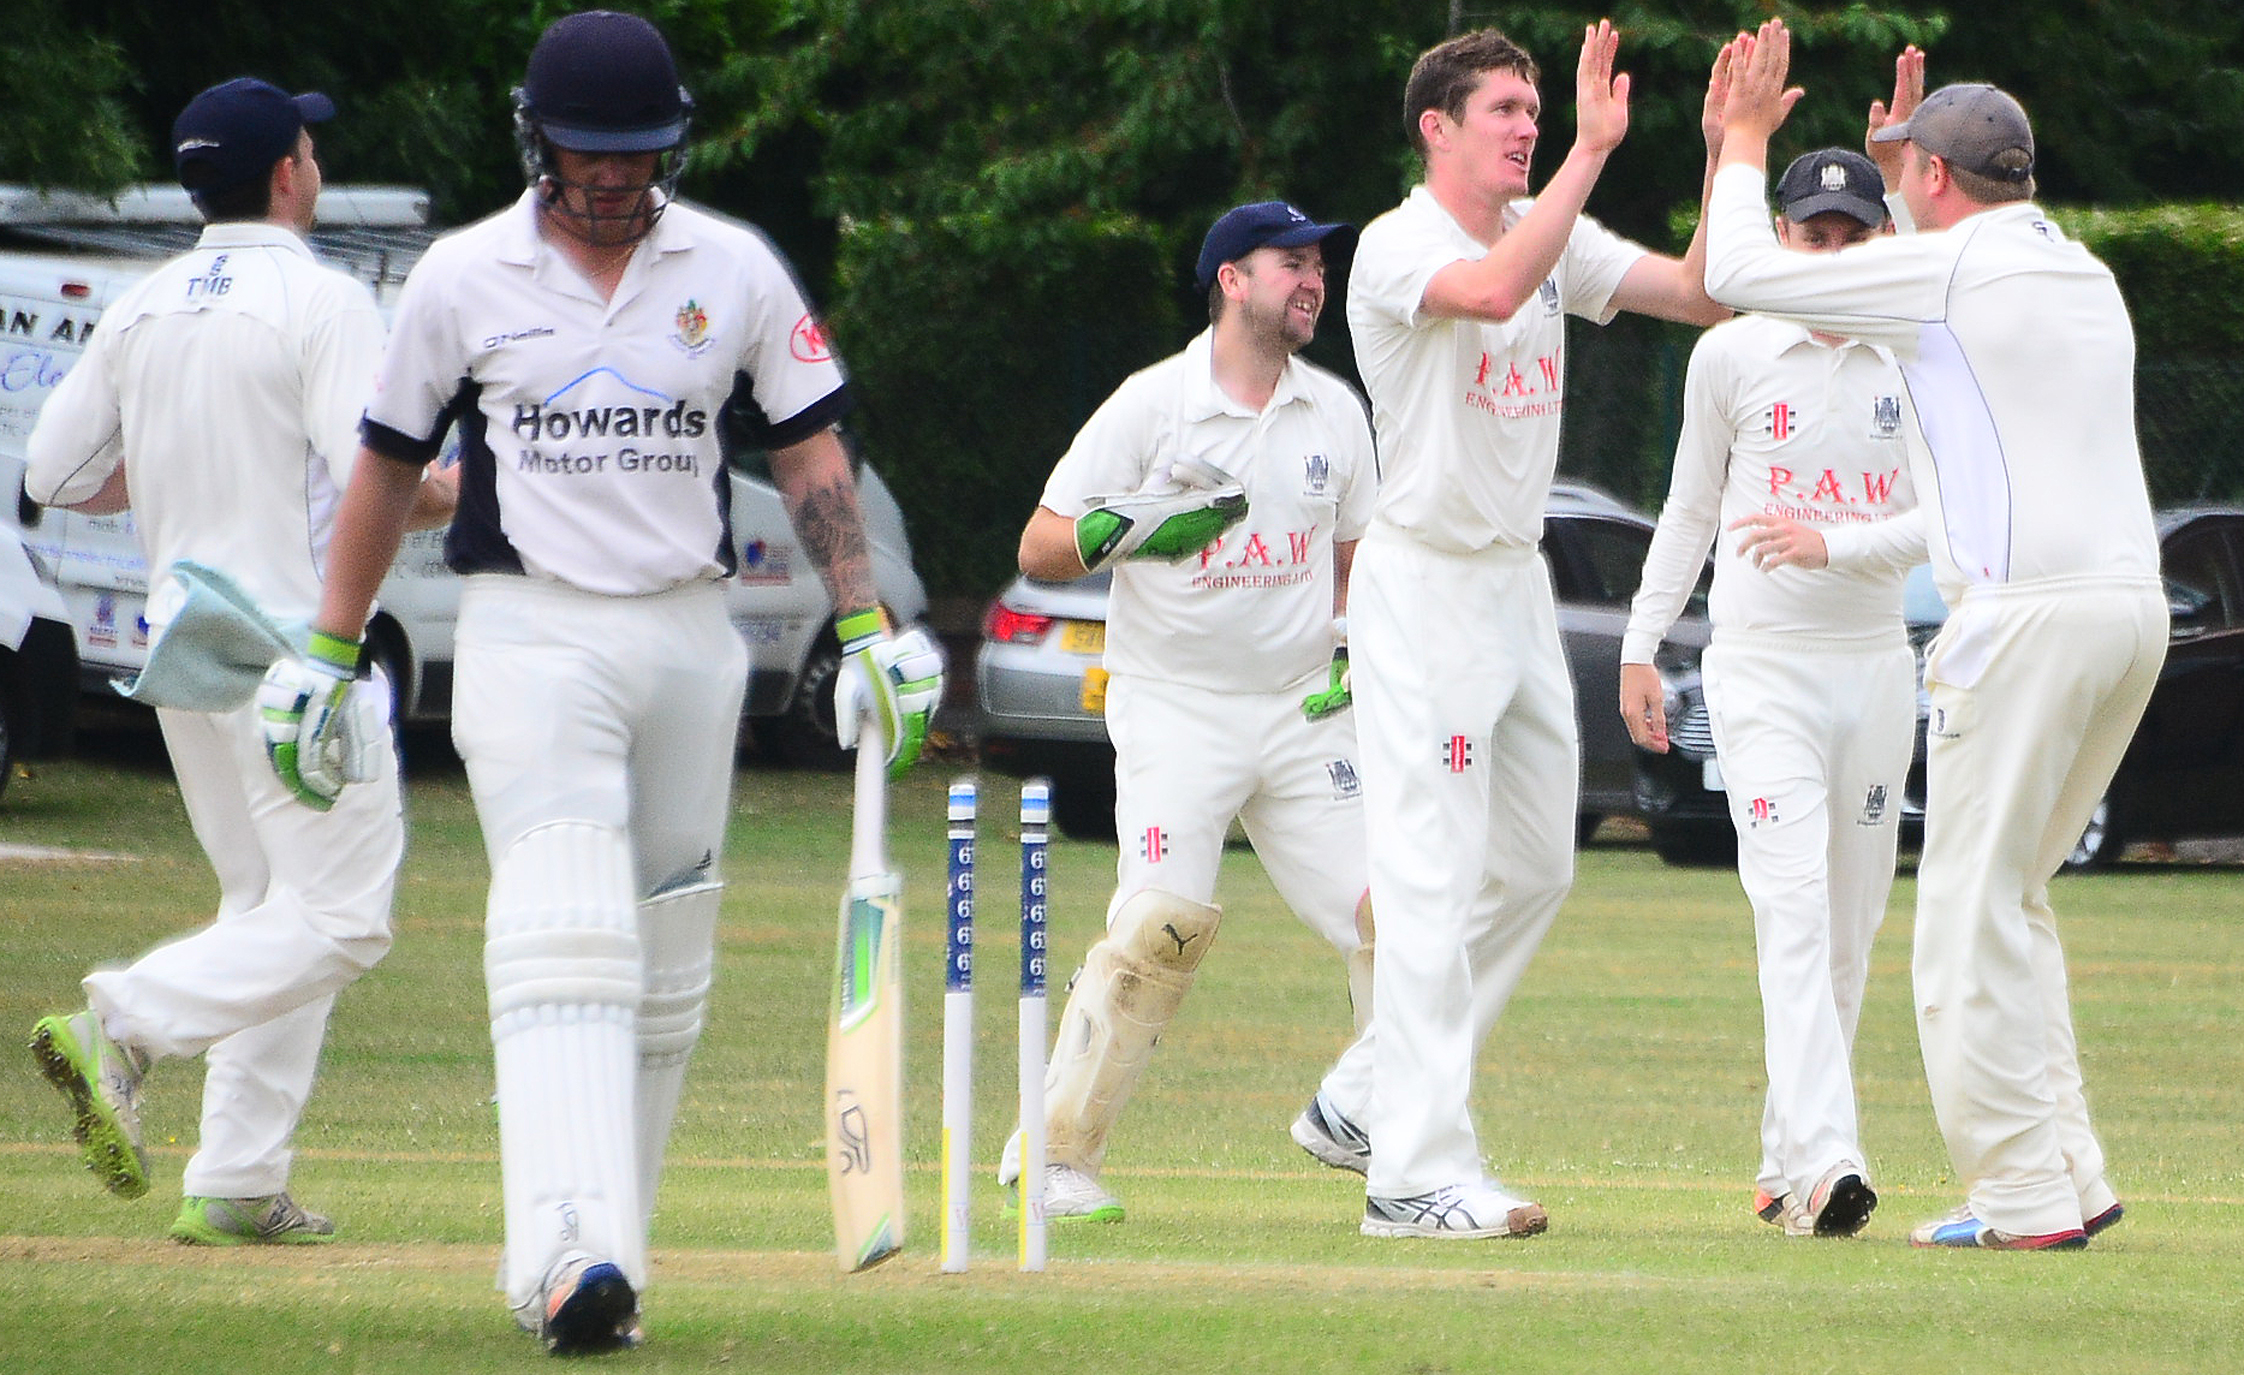 VICTORY: Bridgwater climbed to fourth in WEPL Premier 1 after beating Corsham on Saturday.